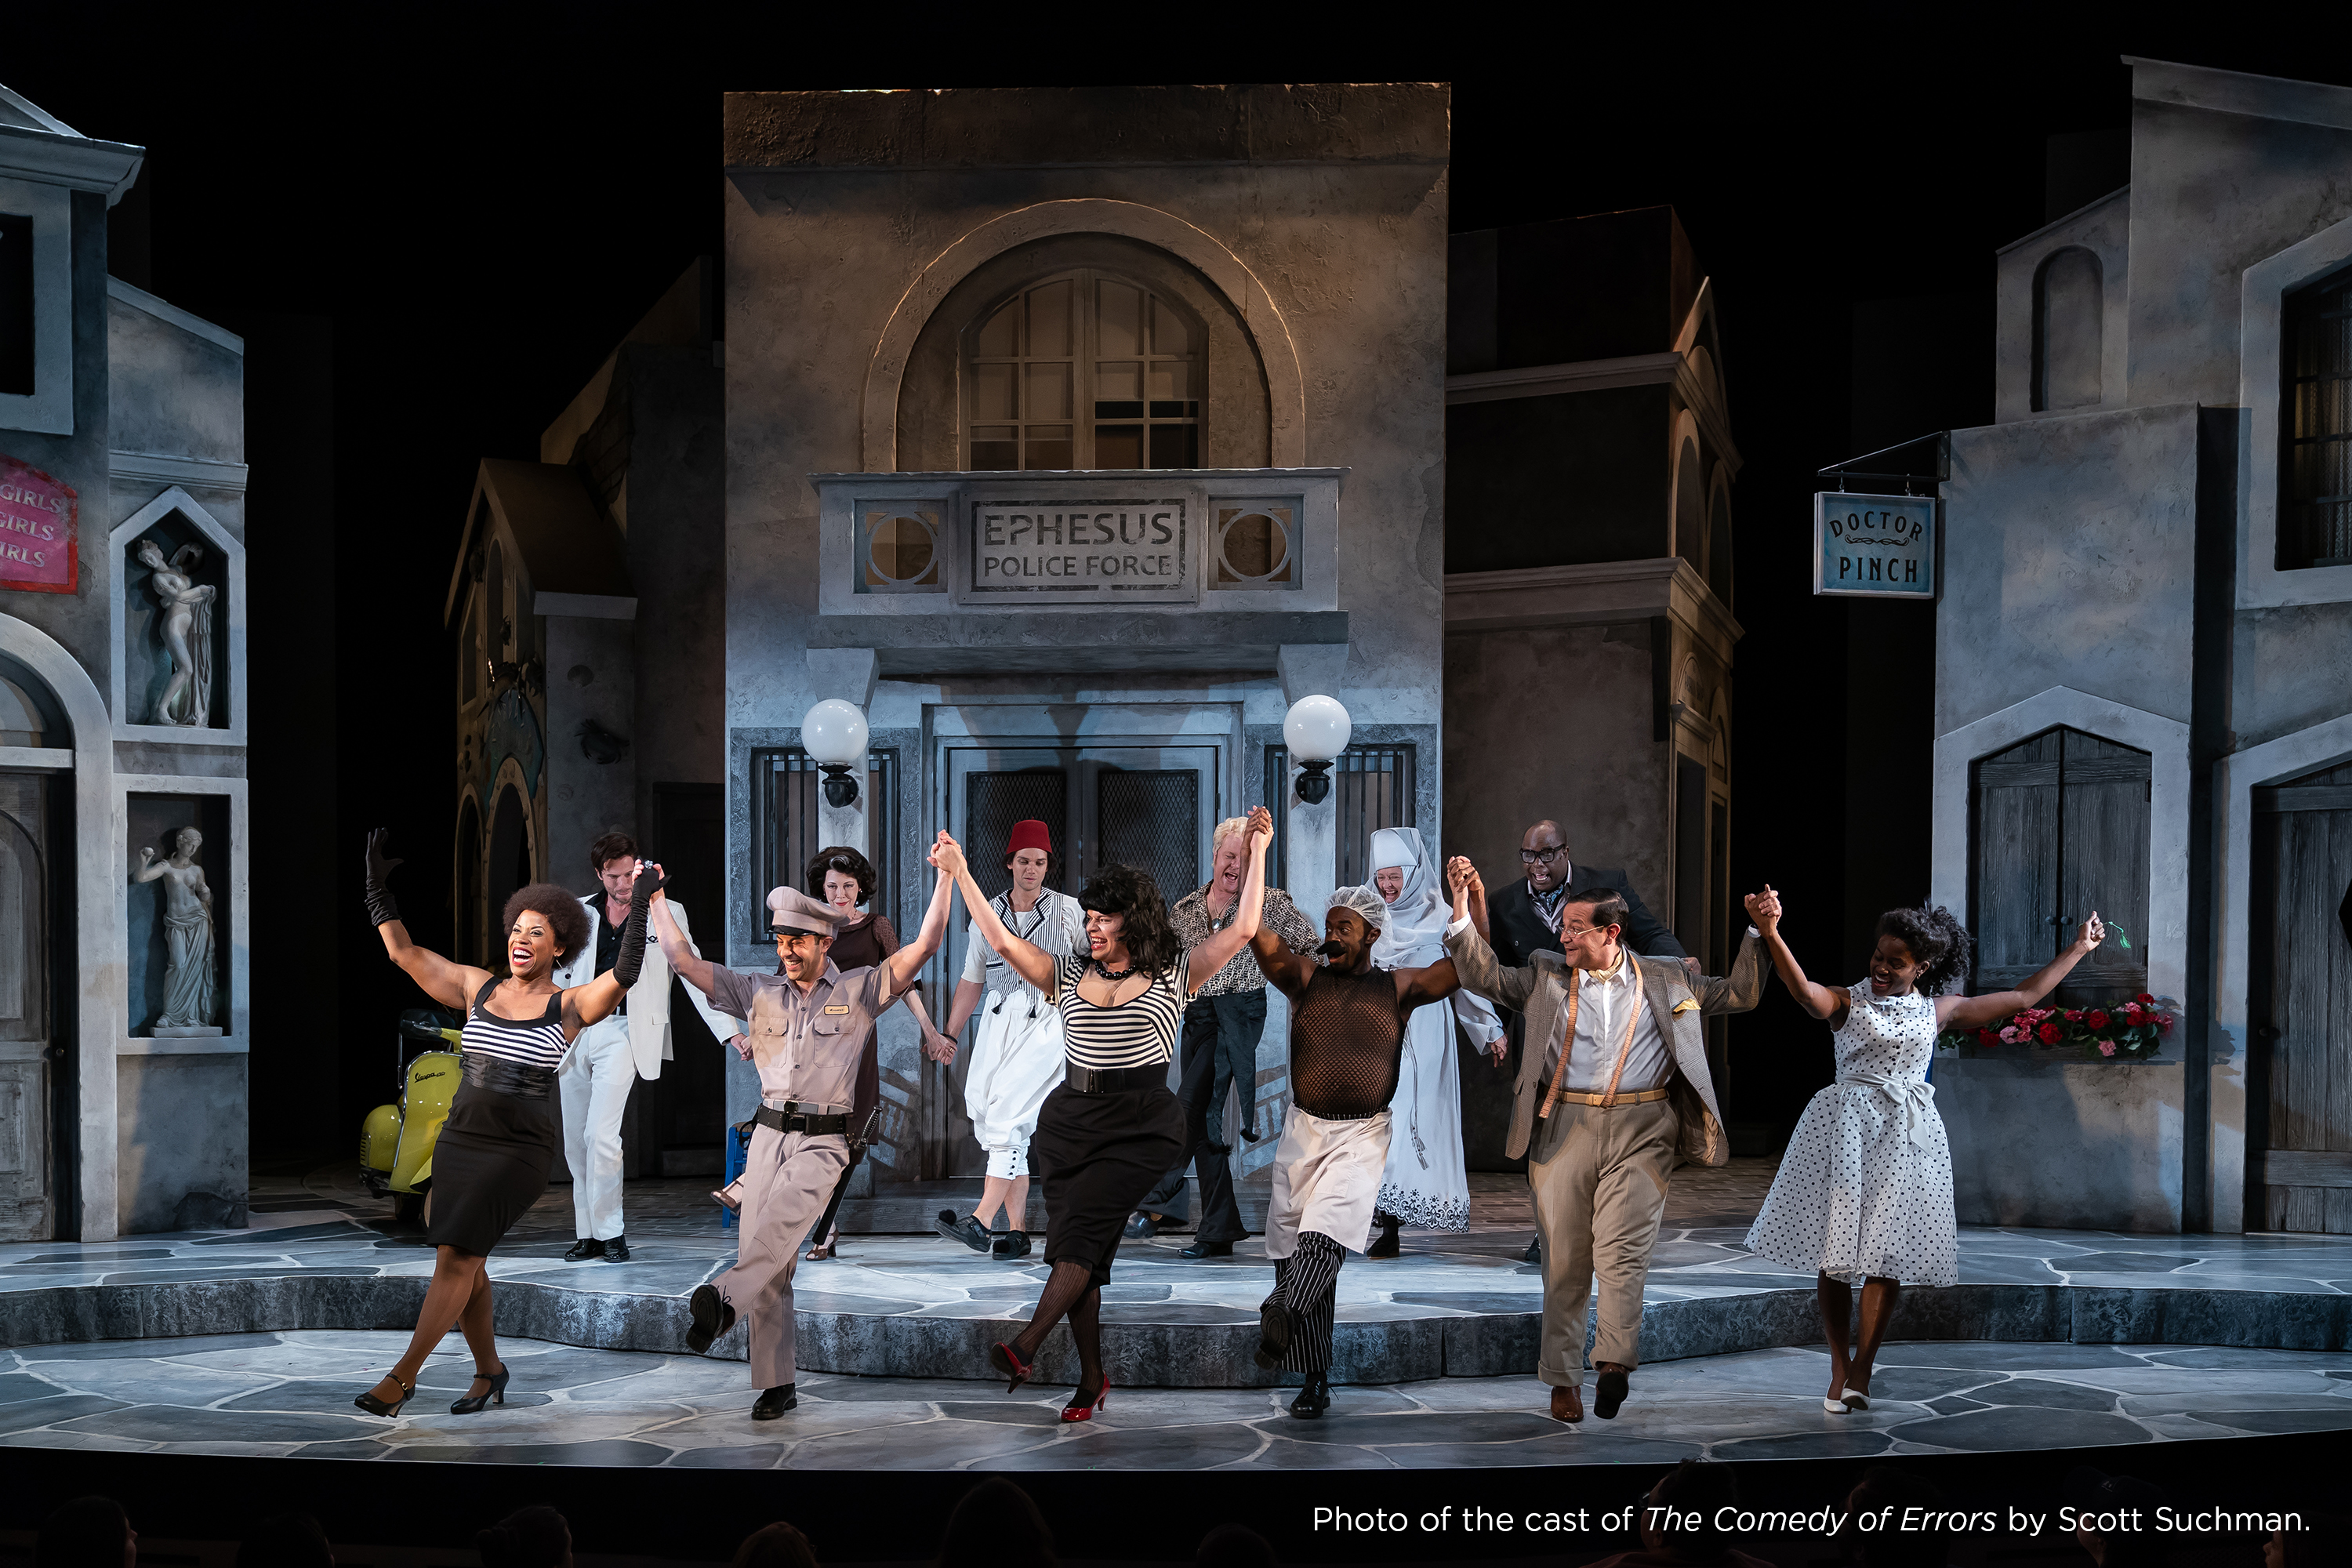 Photo of the cast of The Comedy of Errors by Scott Suchman.